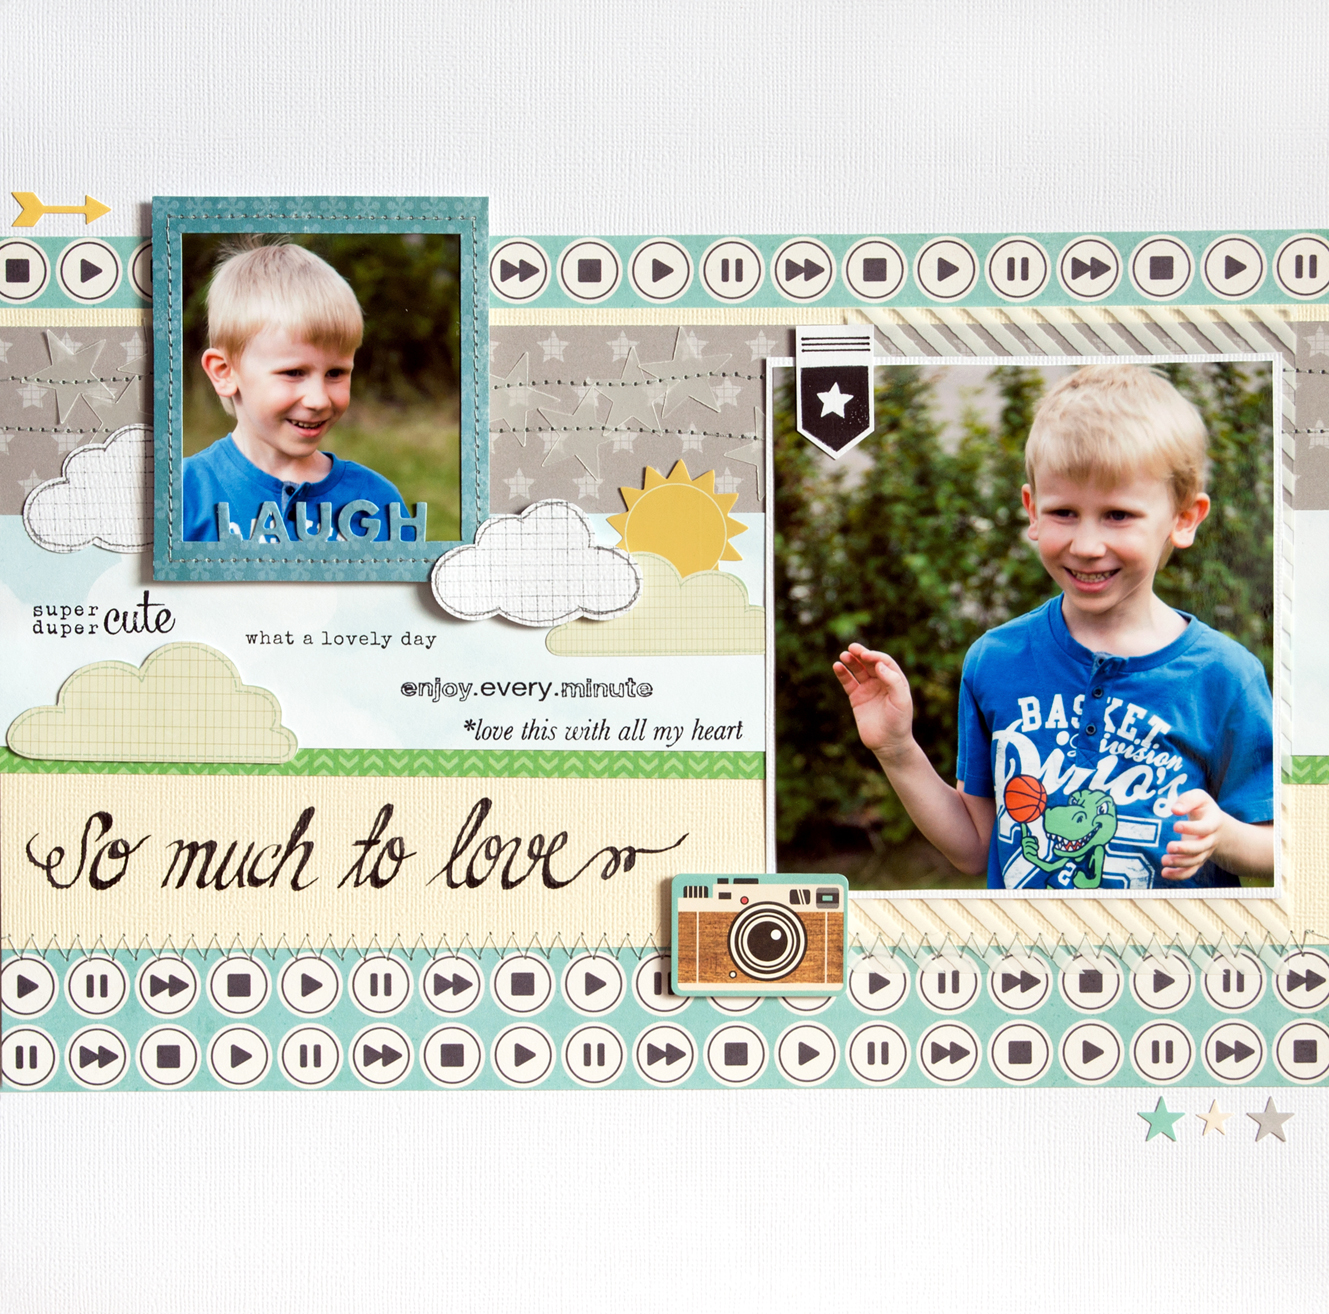 Scrapbooking layout using Creative Scrappers sketch #274: So much to love